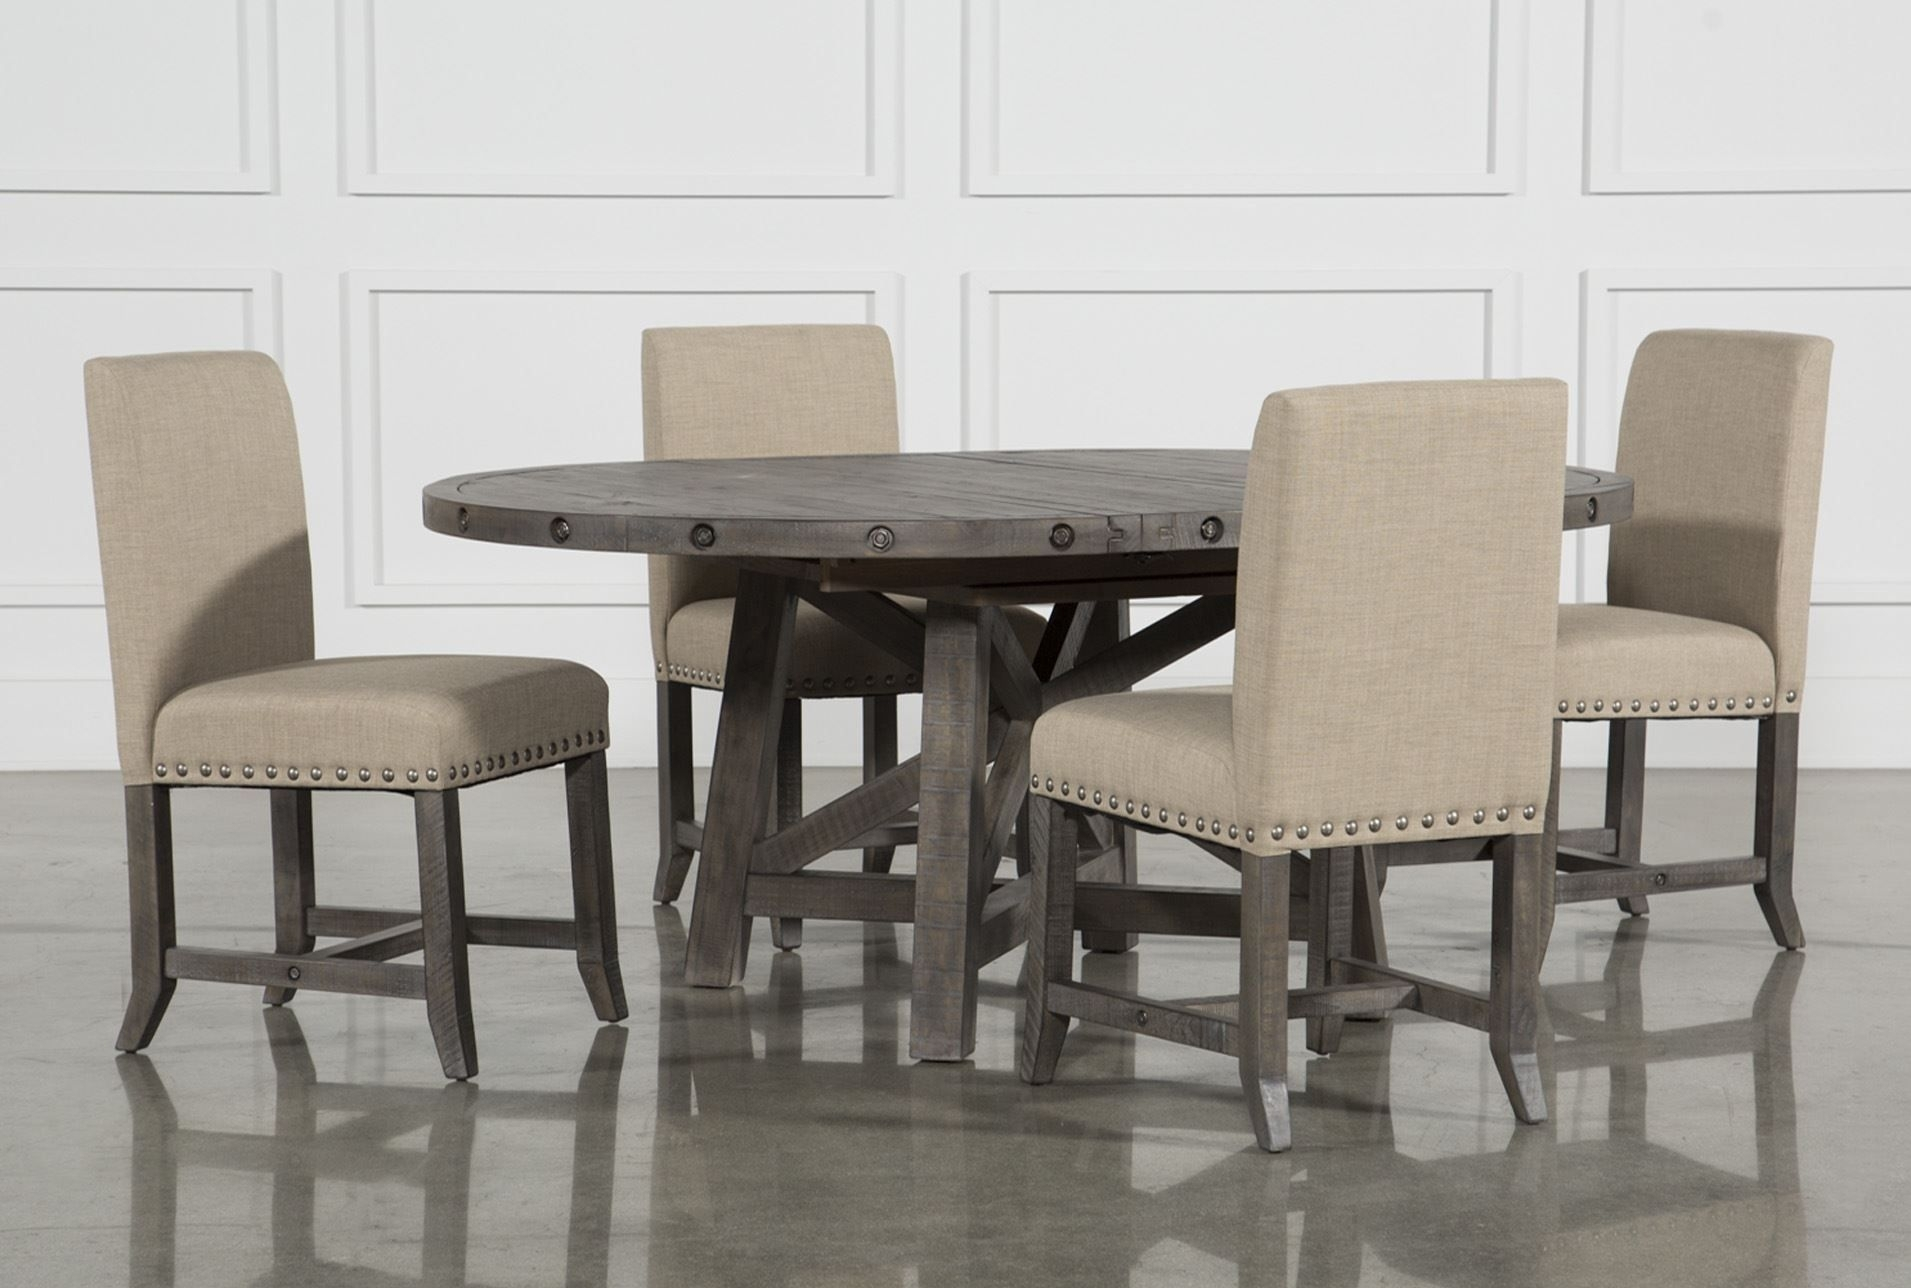 Jaxon Grey 5 Piece Round Extension Dining Set W/upholstered Chairs Inside Newest Jaxon 7 Piece Rectangle Dining Sets With Upholstered Chairs (Image 12 of 20)